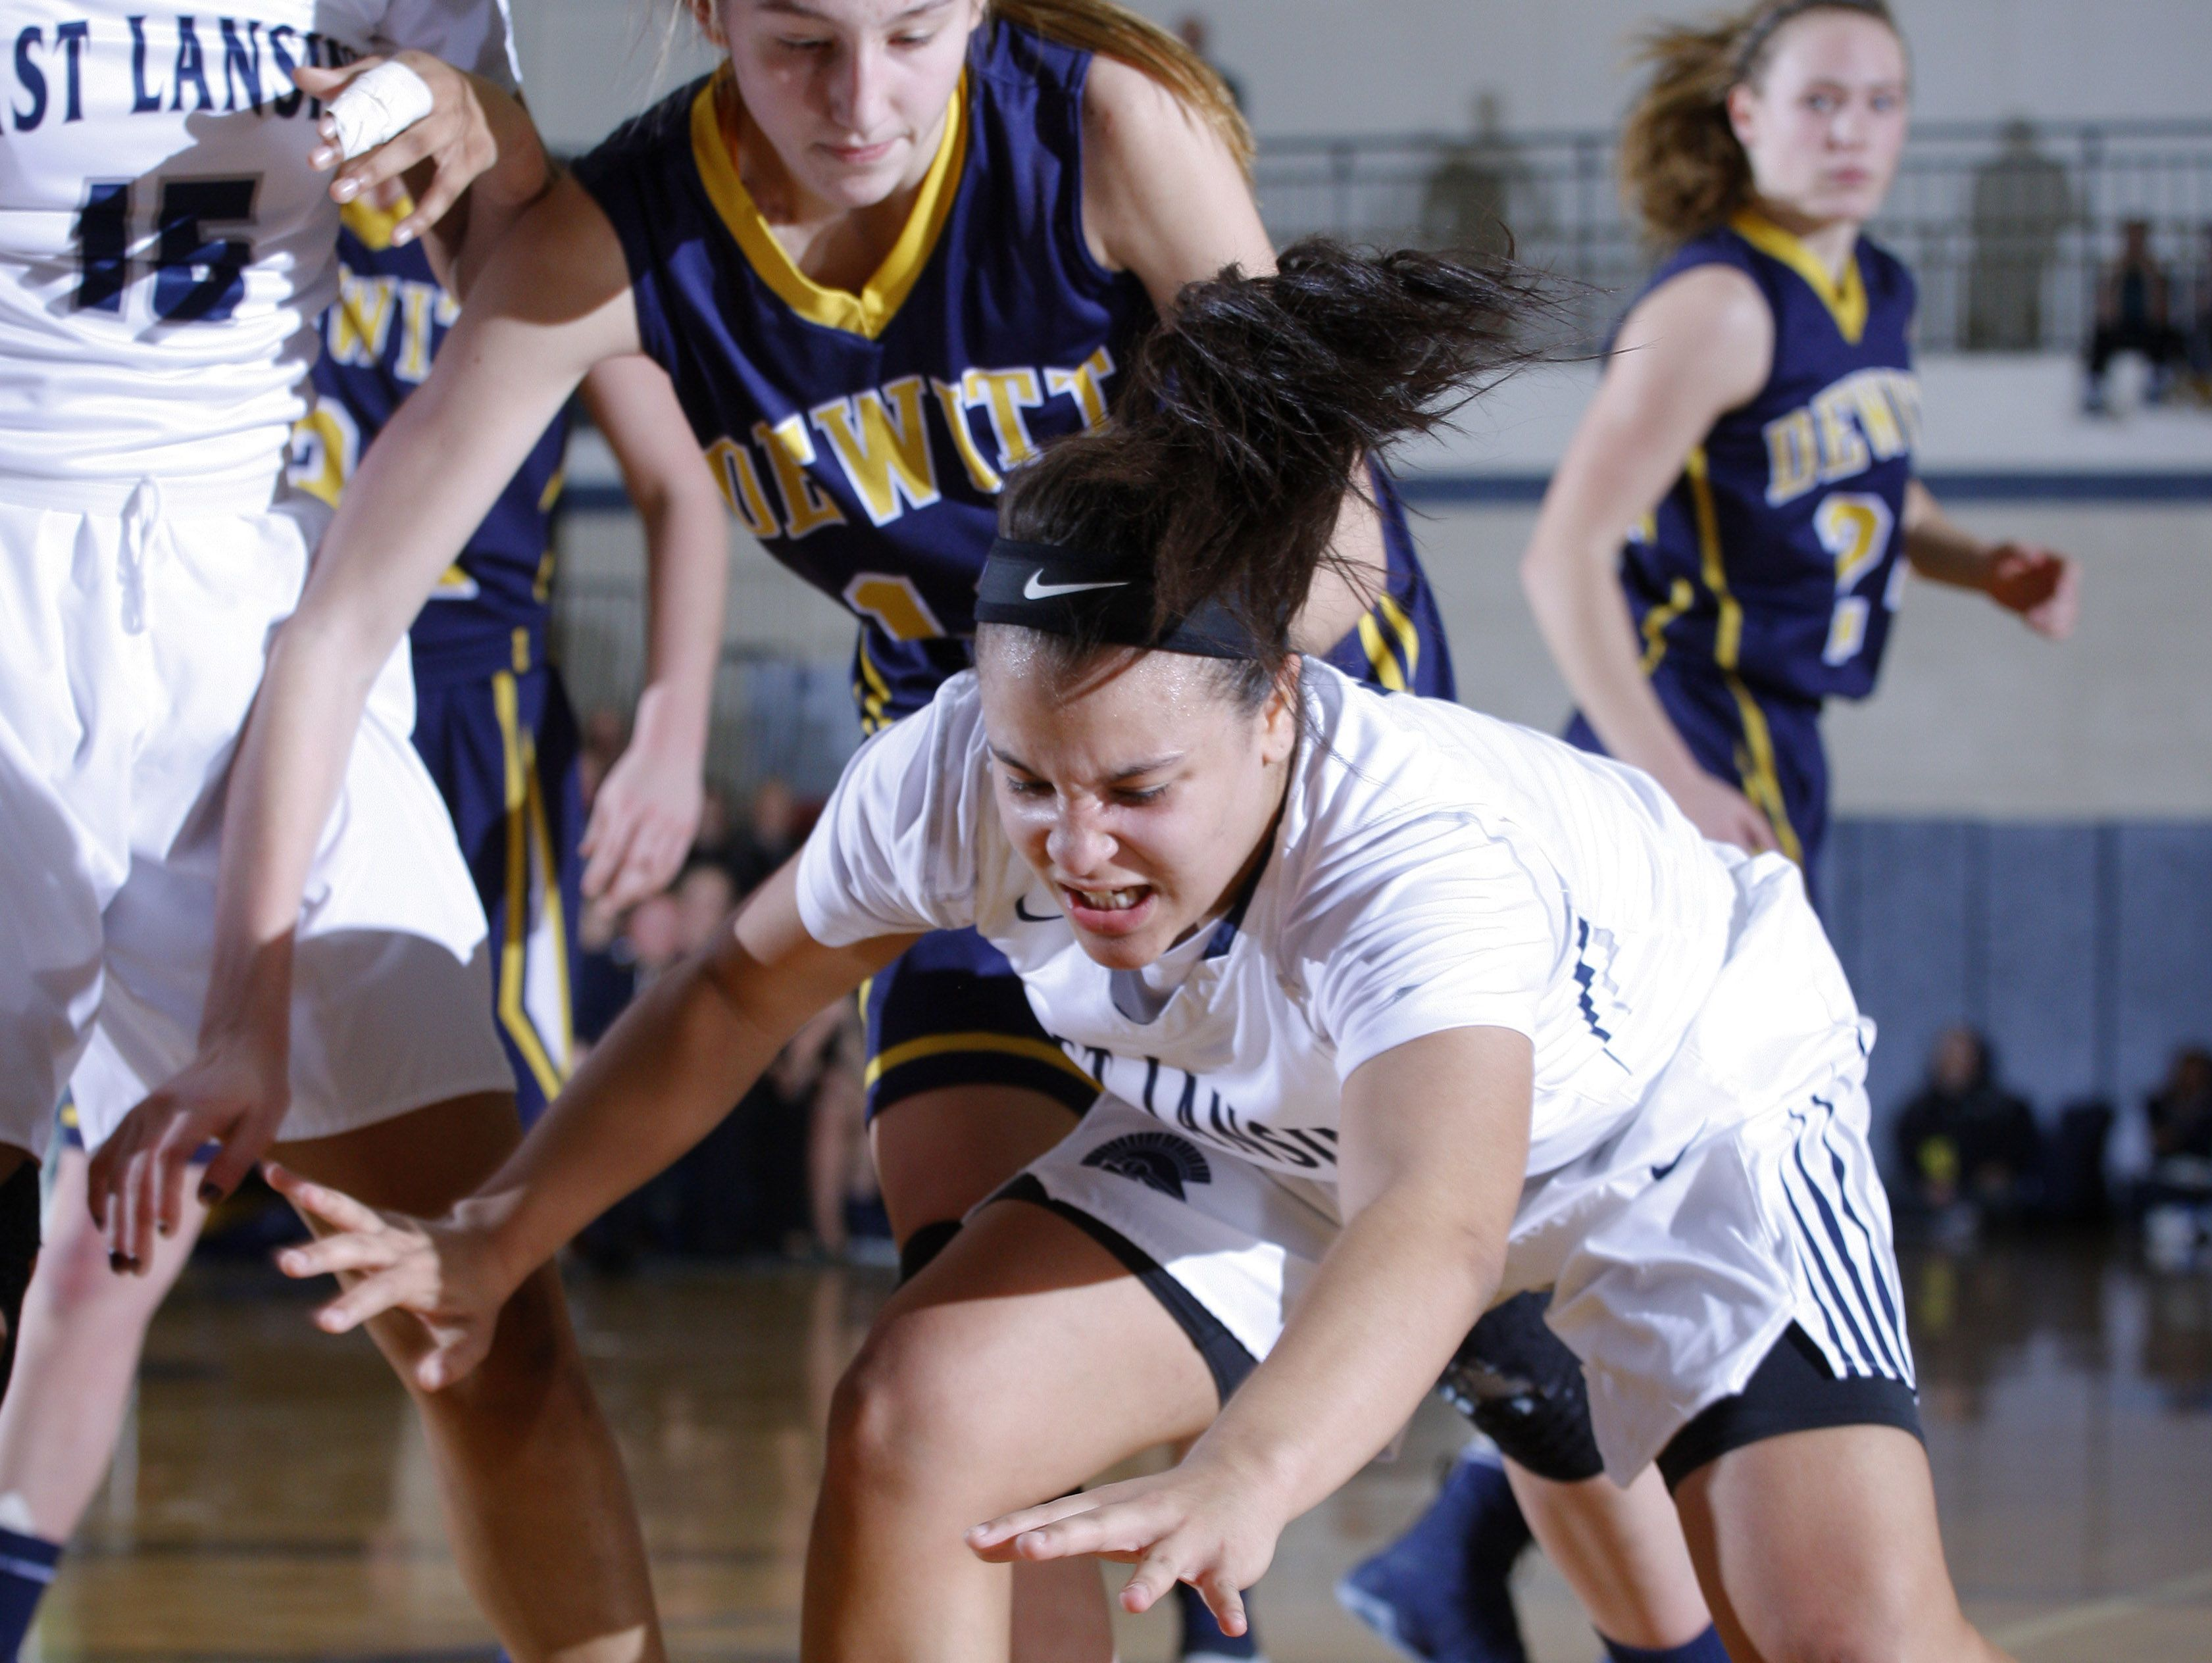 East Lansing's Amelia McNutt, right, and DeWitt's Sydney Mills chase the ball during their district final game Friday, March 3, 2017, in East Lansing, Mich. East Lansing won 48-47.